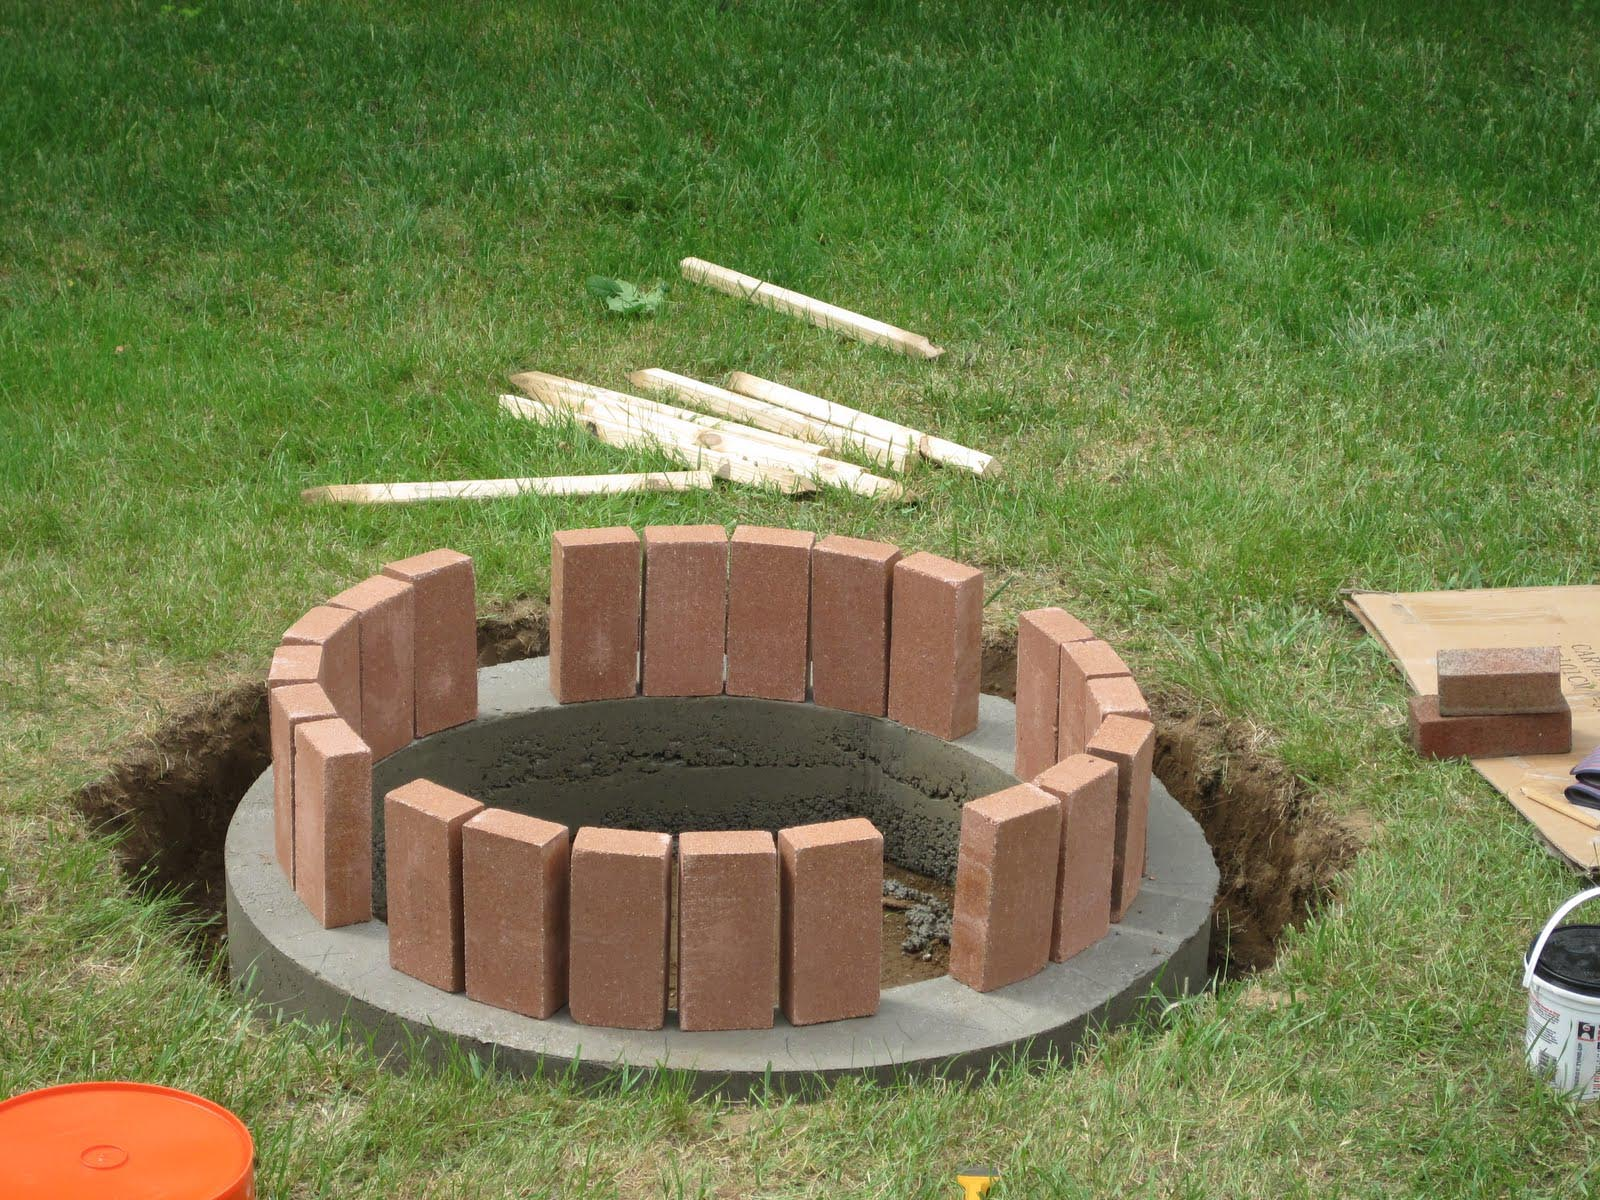 How To Make A Brick Fire Pit In Your Backyard | Fire Pit ...